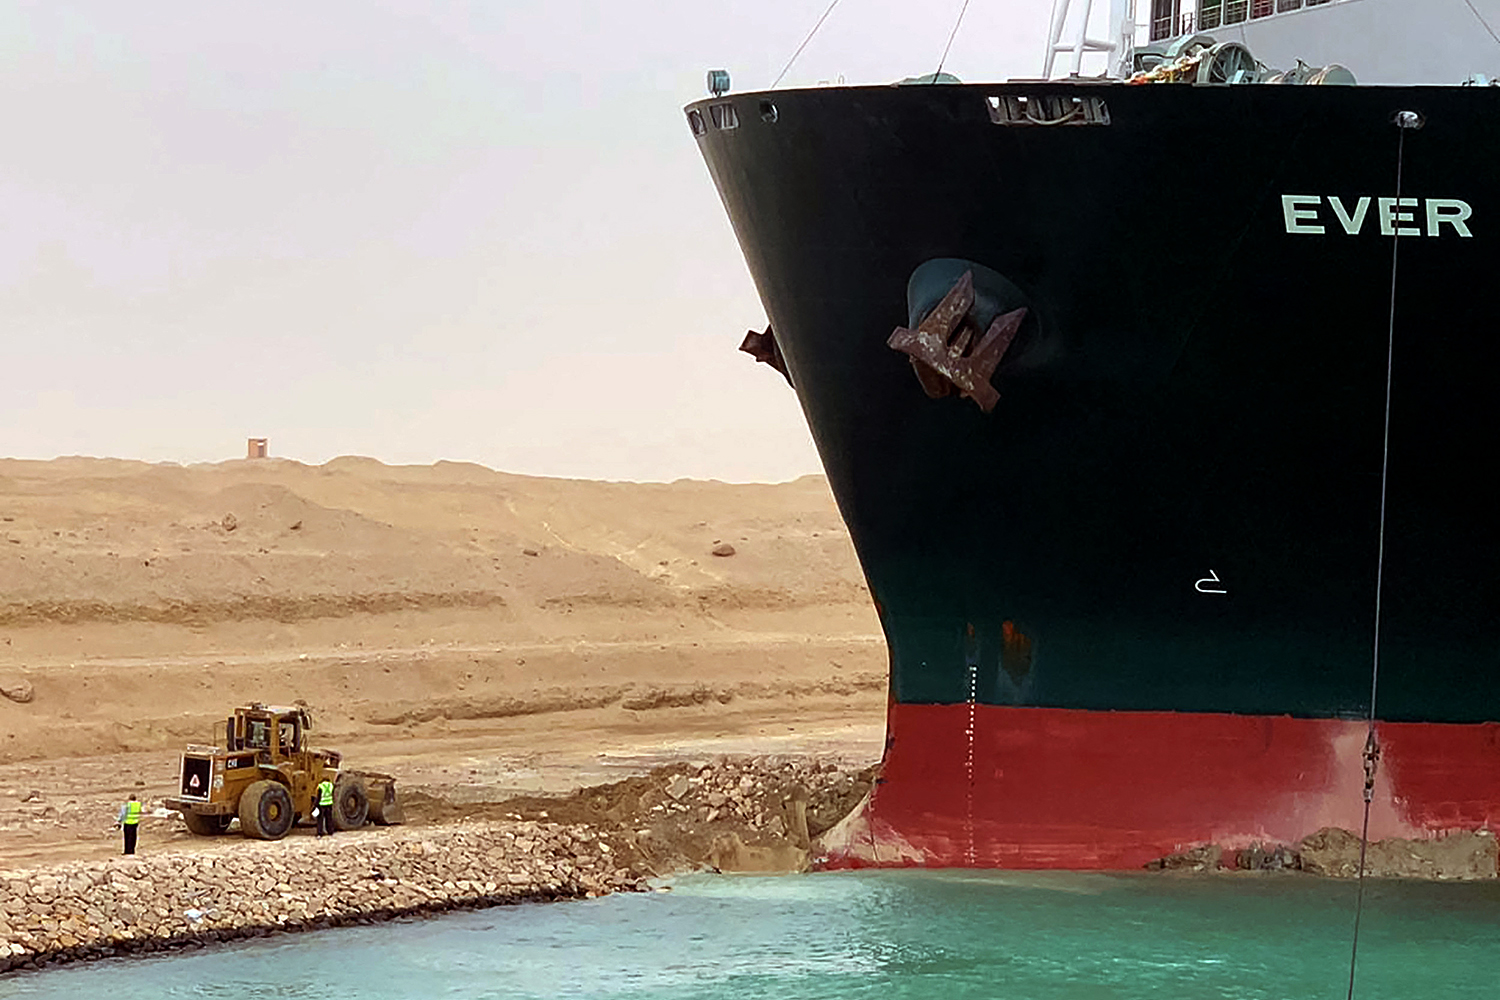 The Taiwan-owned MV Ever Given, a 1,300-foot-long vessel, is lodged sideways in the Suez Canal, impeding all traffic across the waterway, March 24. The giant container ship ran aground after a gust of wind blew it off course, the vessel's operator said. Suez Canal Authority/HO/AFP via Getty Images